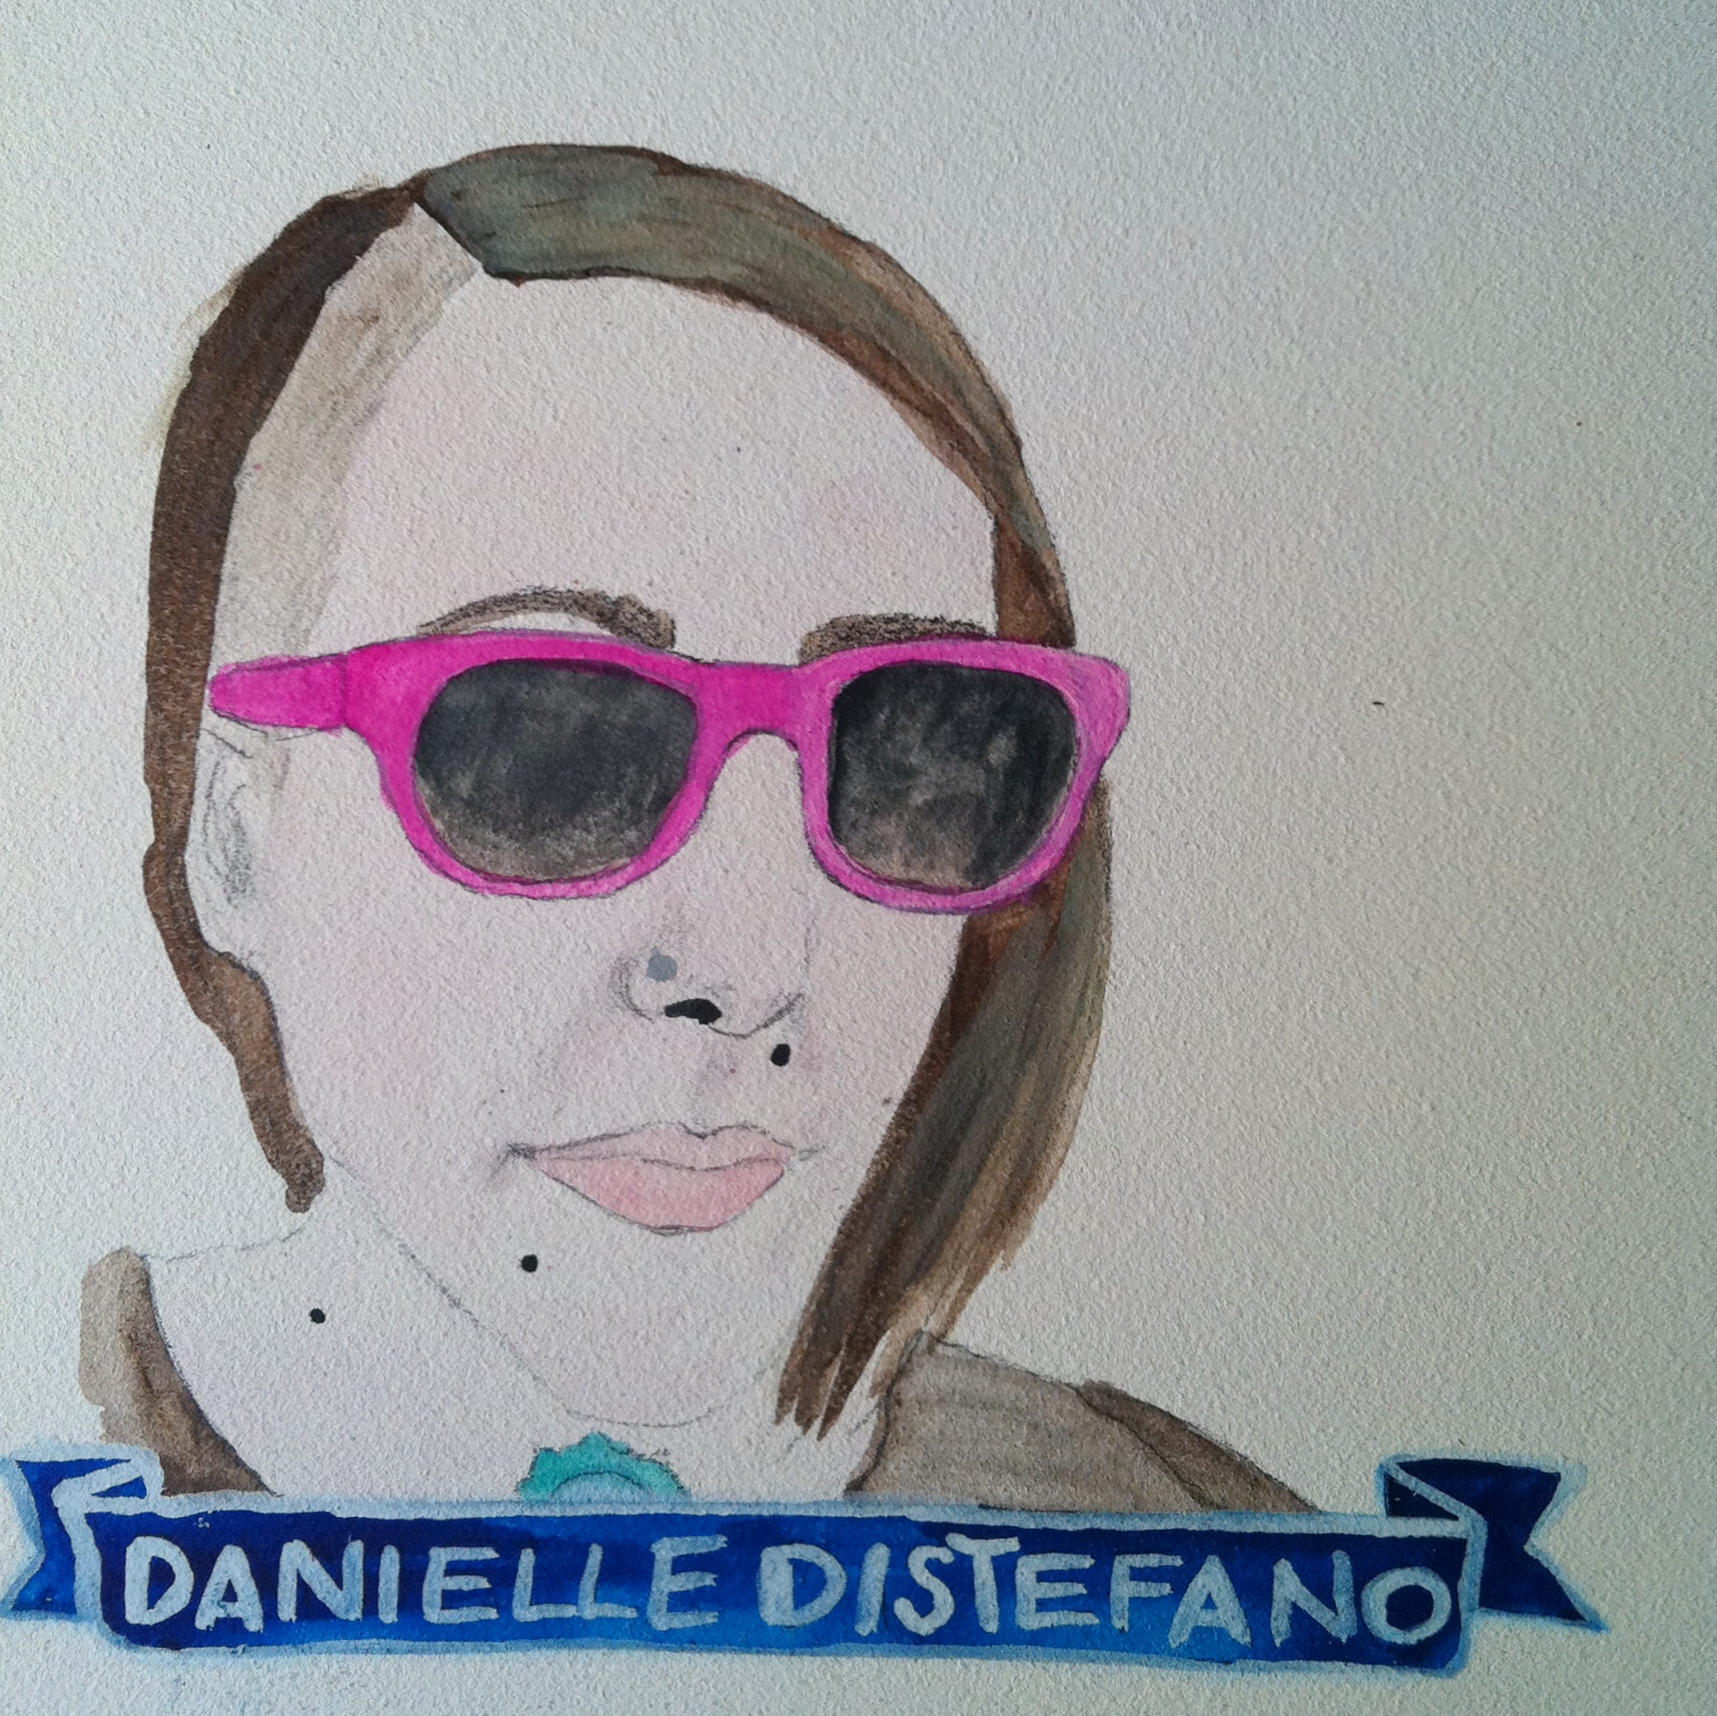 Talent Loves Company at Barbara Archer Gallery: 365 portraits by Lydia Walls - Danielle Distefano